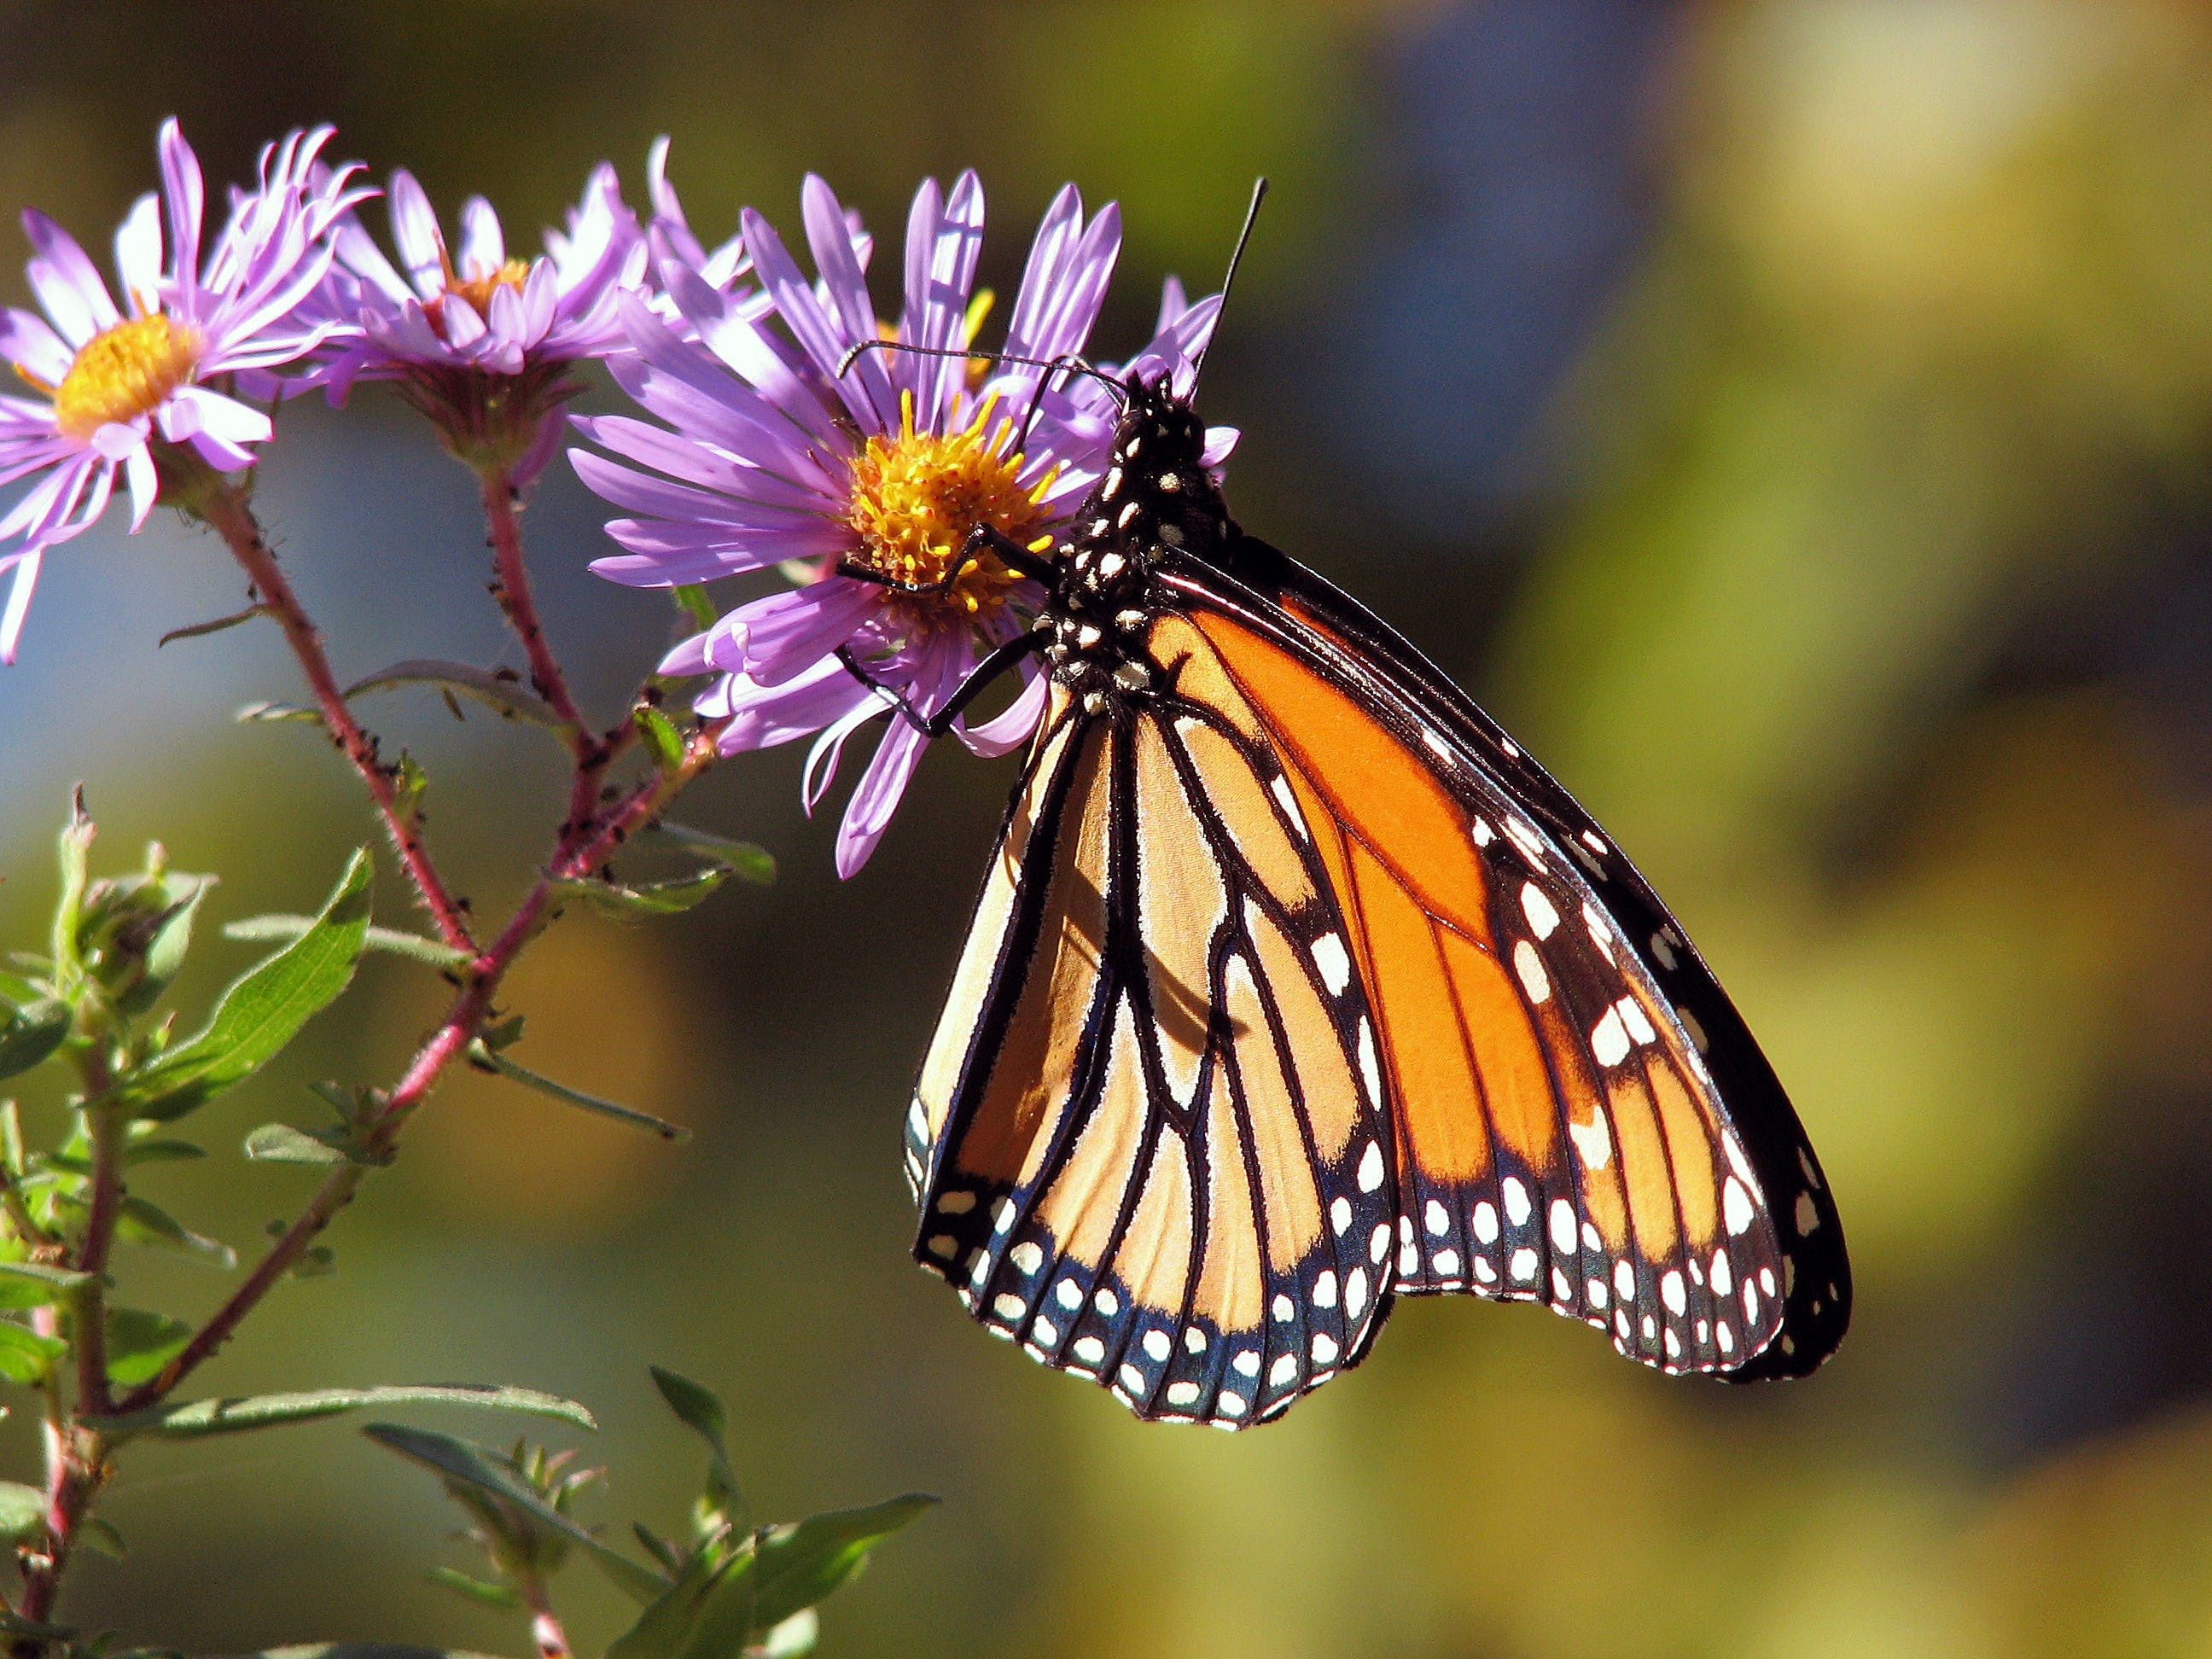 Orange and Black Polka Dot Butterfly Perch on Purple Flower during Daytime